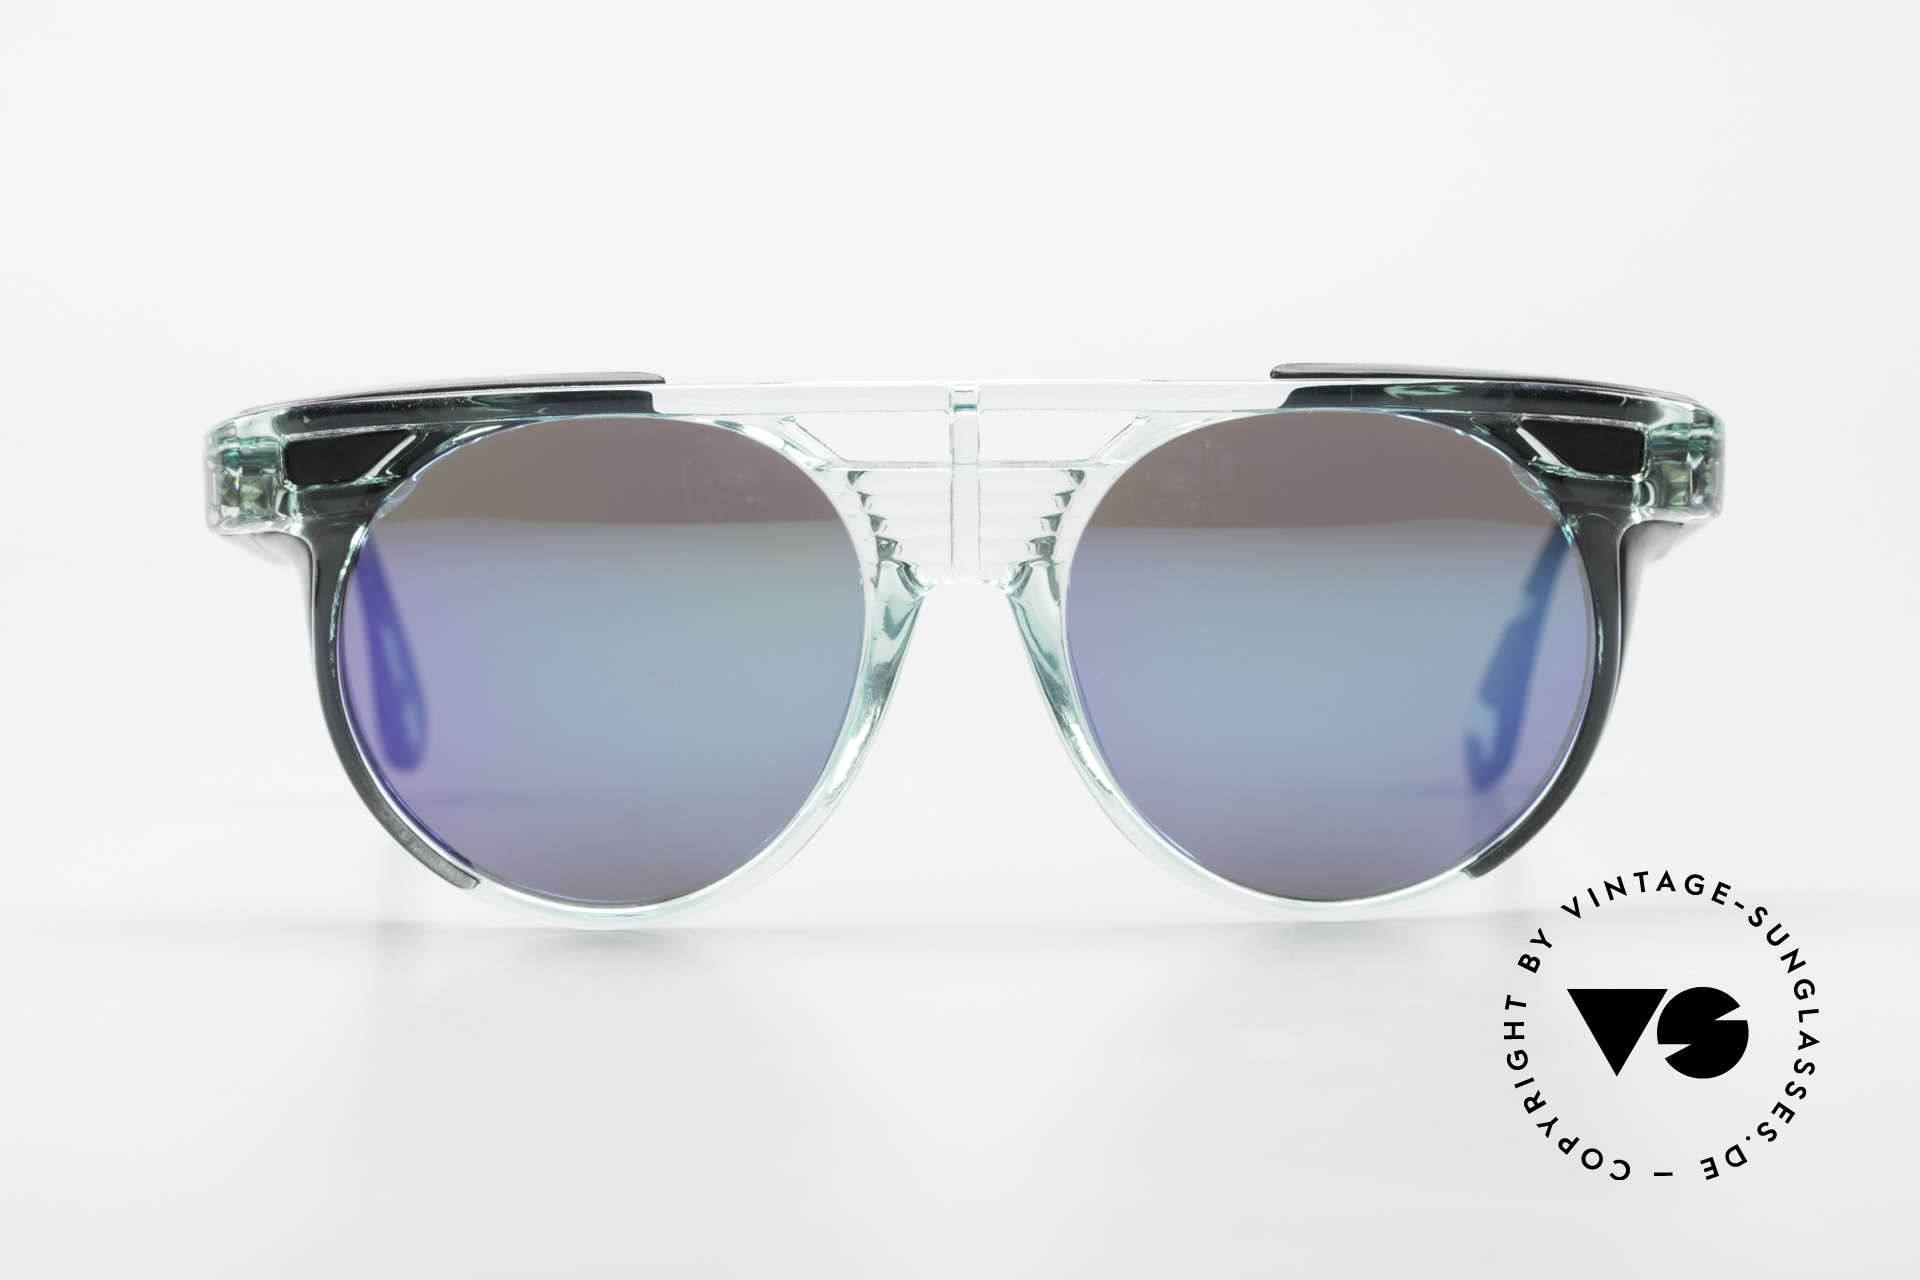 Carrera 5251 Round Sunglasses Steampunk, lightweight frame with extraordinary 'green' coloring, Made for Men and Women